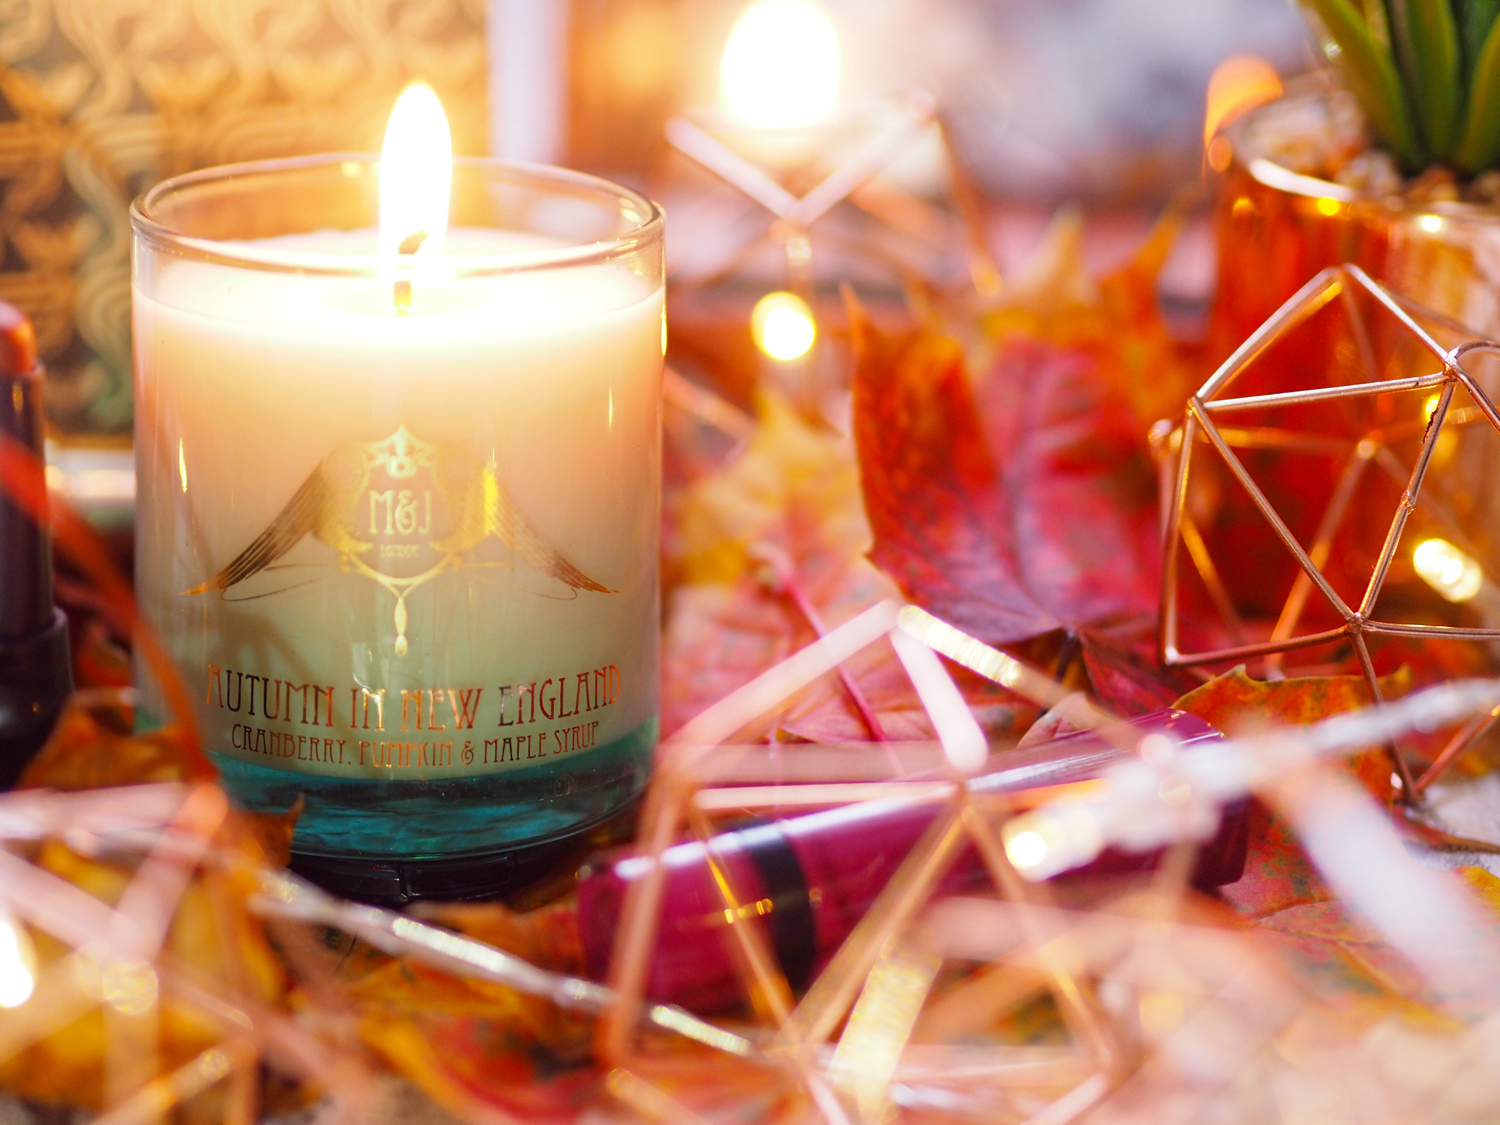 M&J London Autumn in New England Candle Review